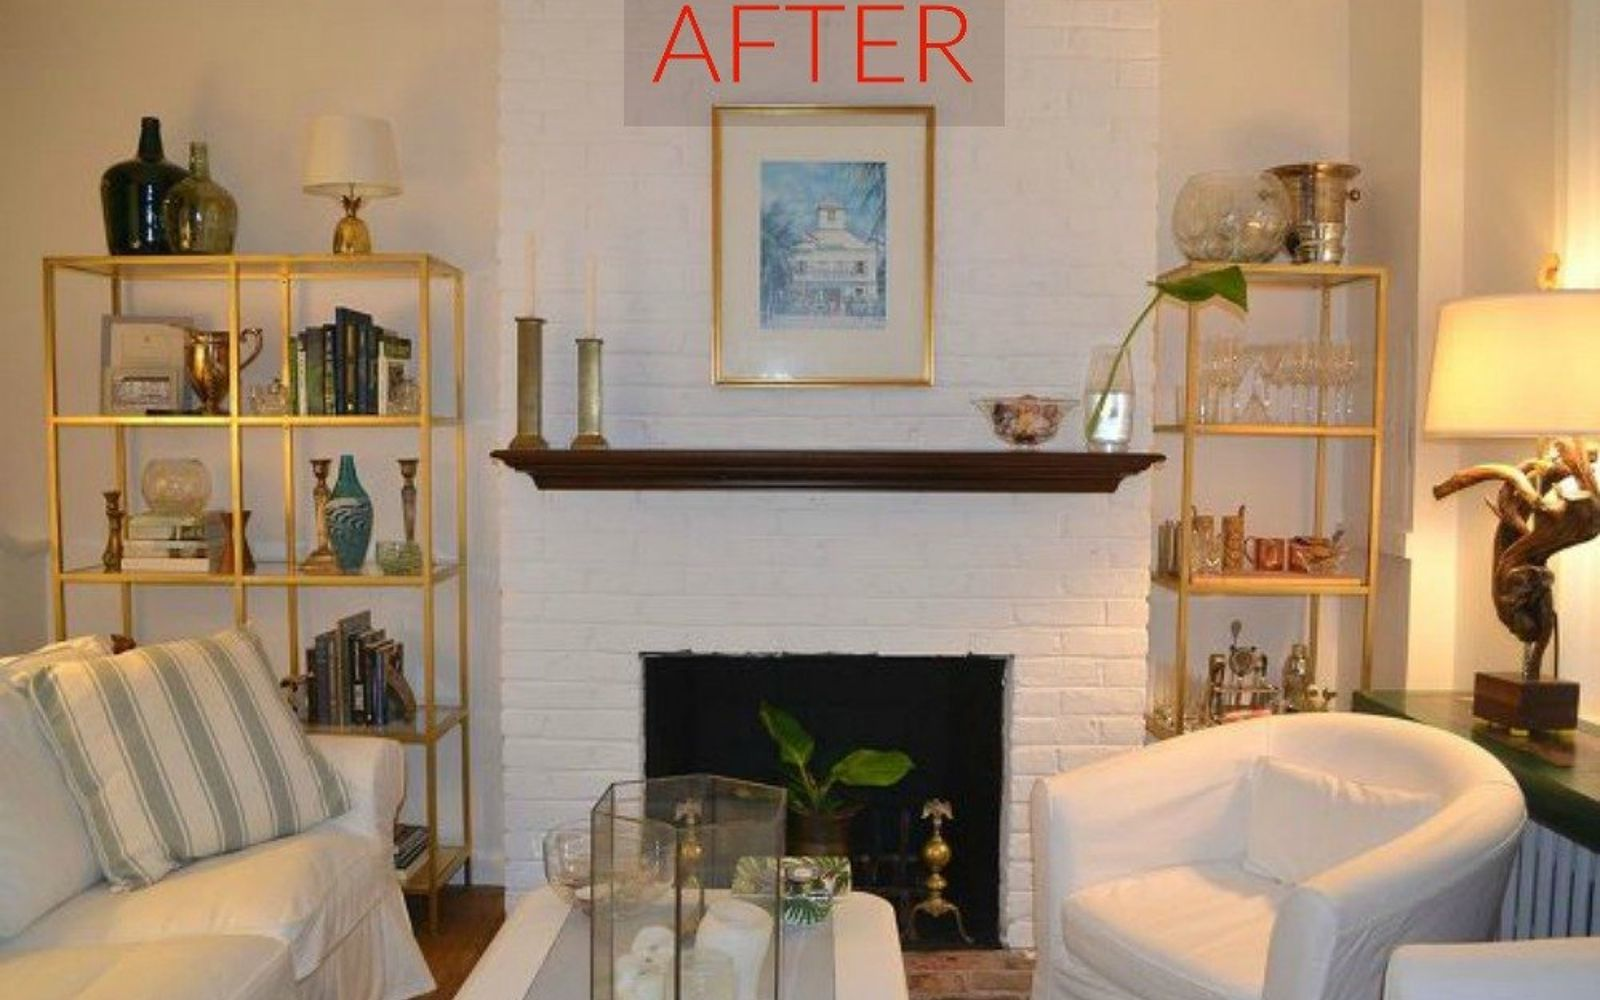 s 10 gorgeous ways to transform a brick fireplace without replacing it, concrete masonry, fireplaces mantels, The fix Match it to the color of the room